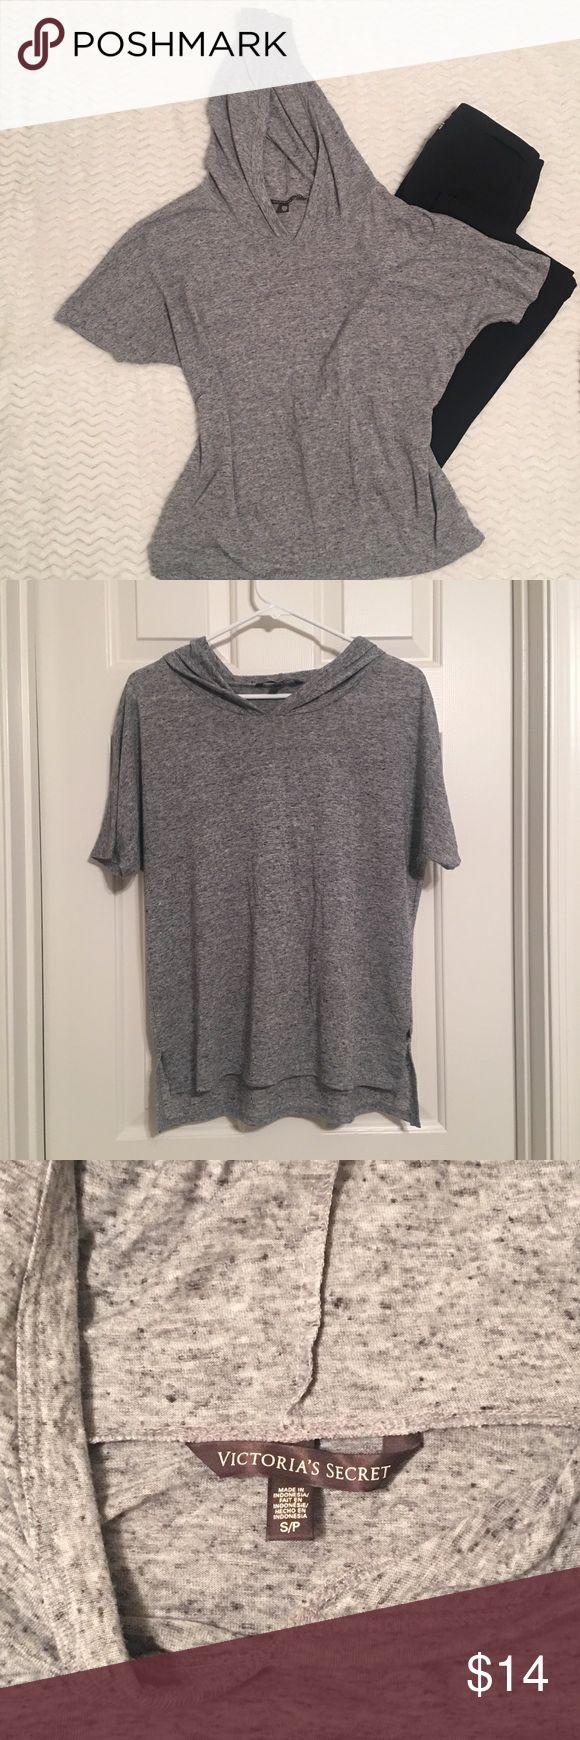 "Victoria's Secret Short Sleeve Hoodie VS gray hoodie with short sleeves, loose fitting for a relaxed fit, thin and lightweight, 85% polyester, 15% flax, Chest 40"", waist 39"", length 34"" in front, 36"" in back. Victoria's Secret Tops Sweatshirts & Hoodies"